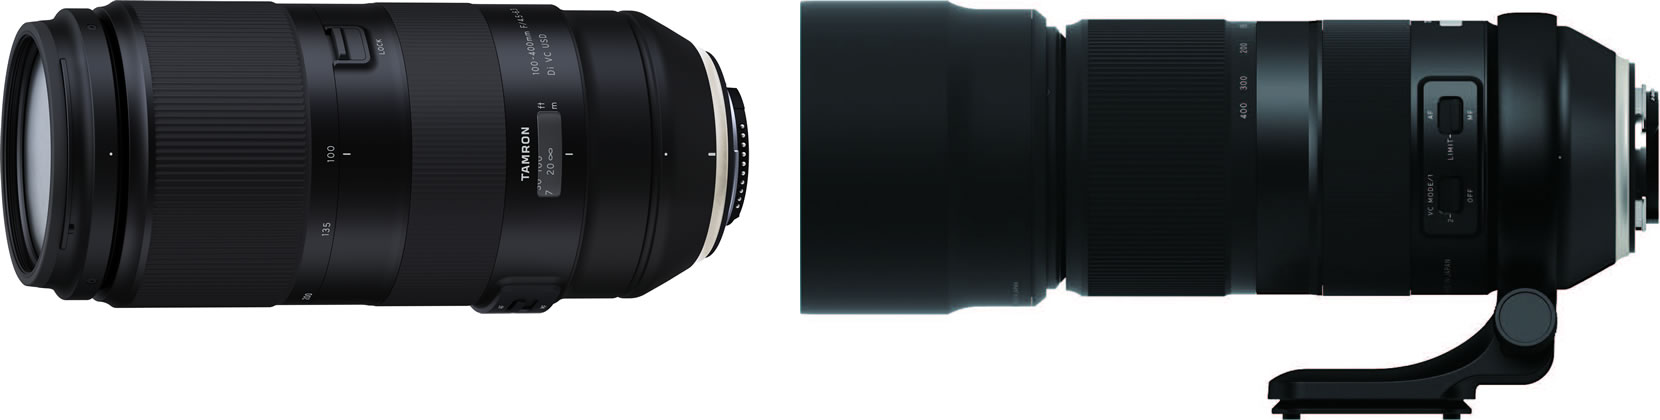 Tamron announces the development of a new ultra-telephoto zoom lens ...